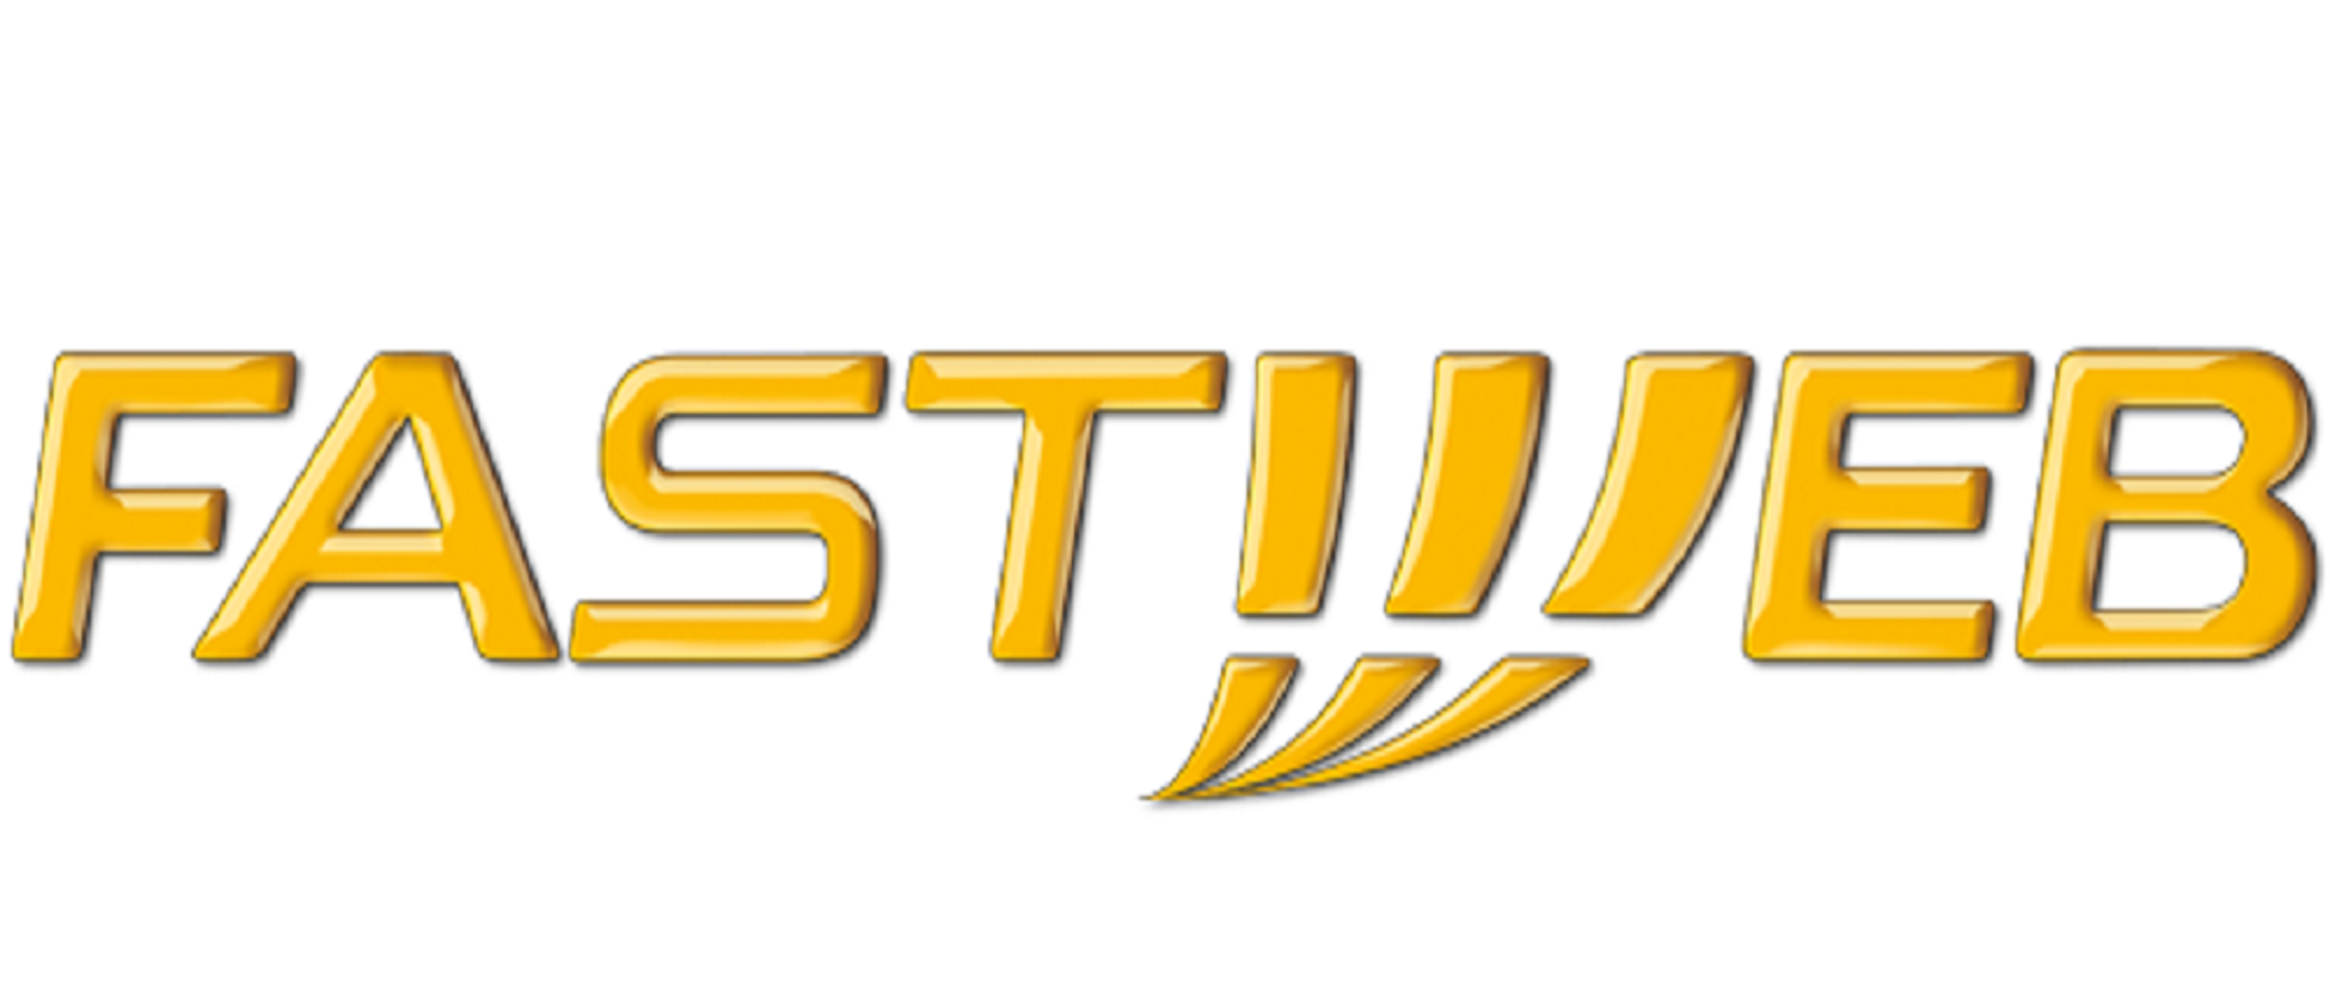 Chetariffa.it - FASTWEB